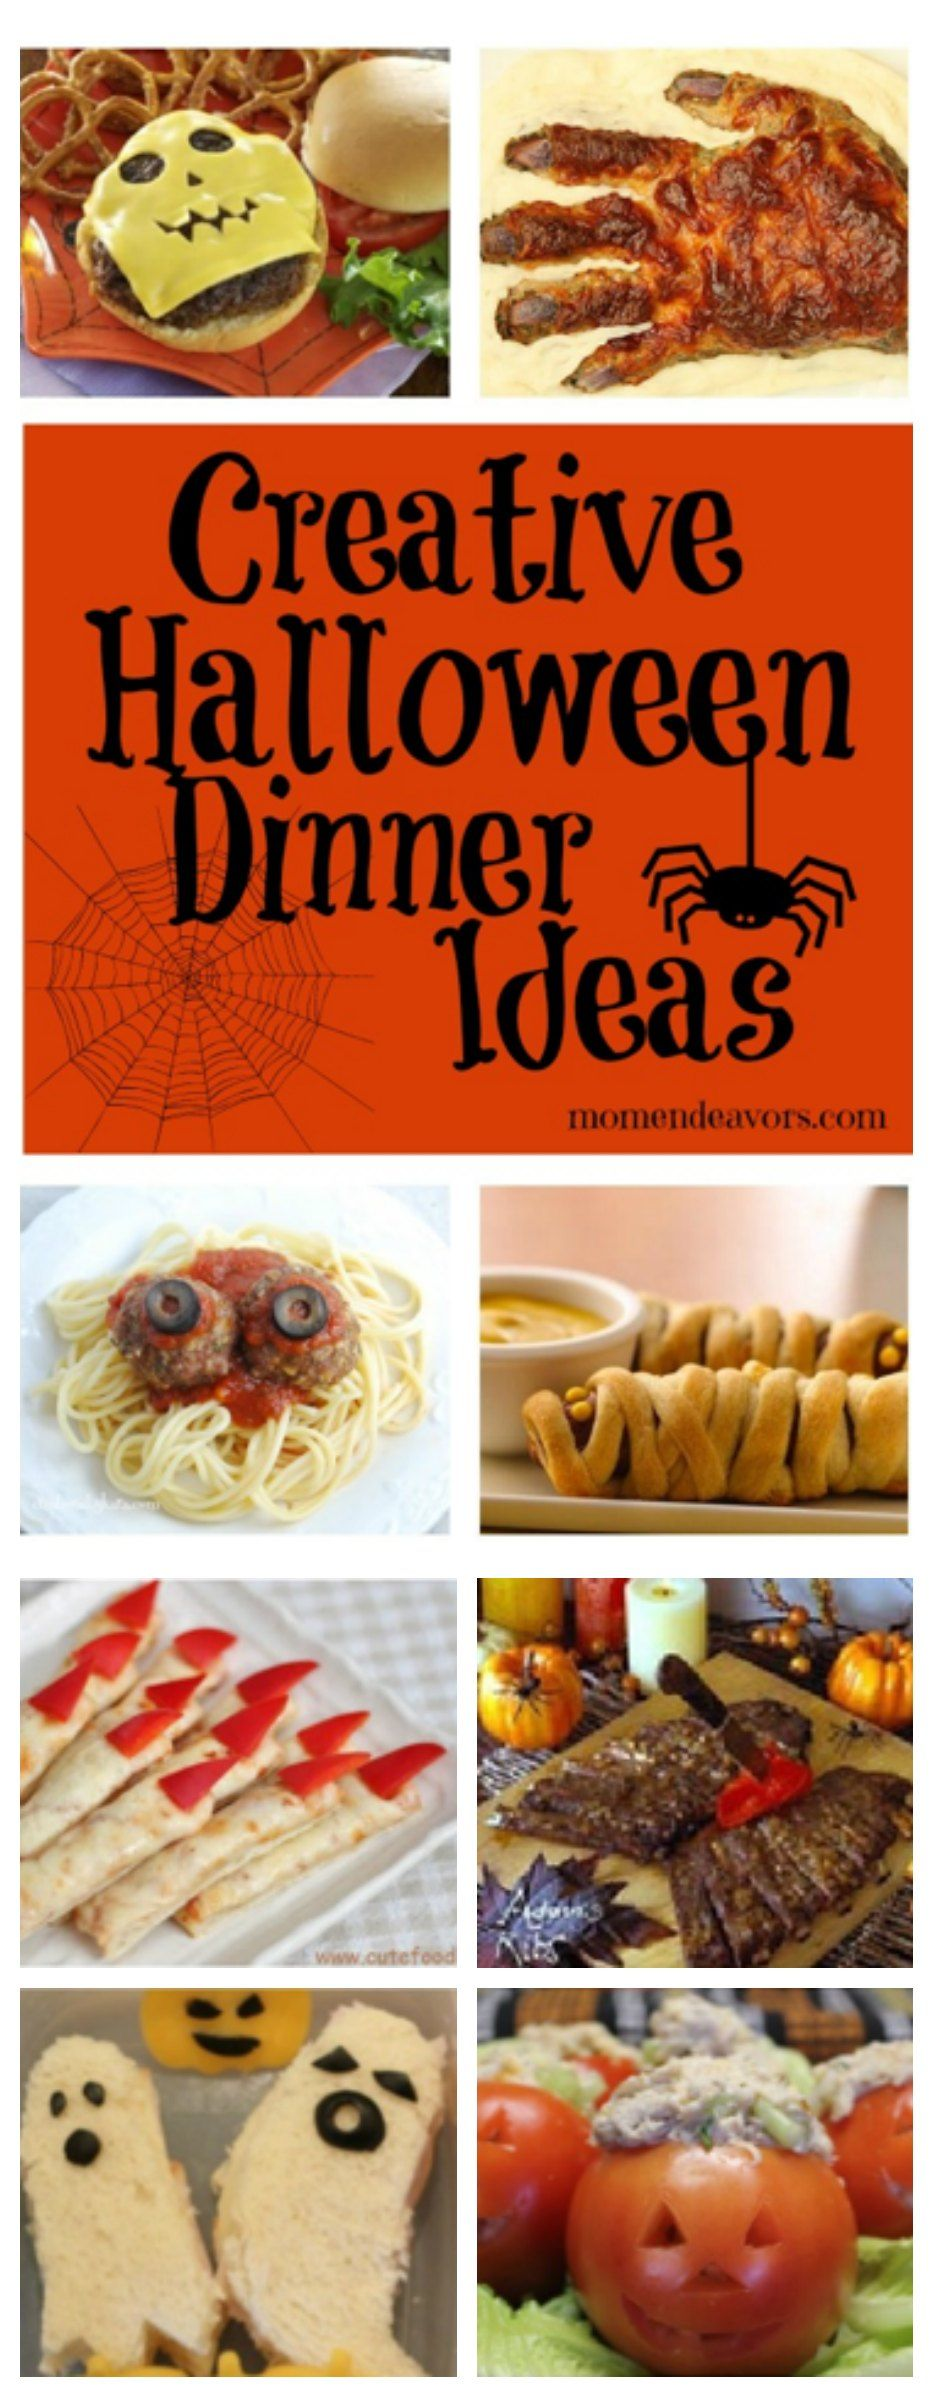 15 Creative Halloween Dinner Ideas - Mom Endeavors